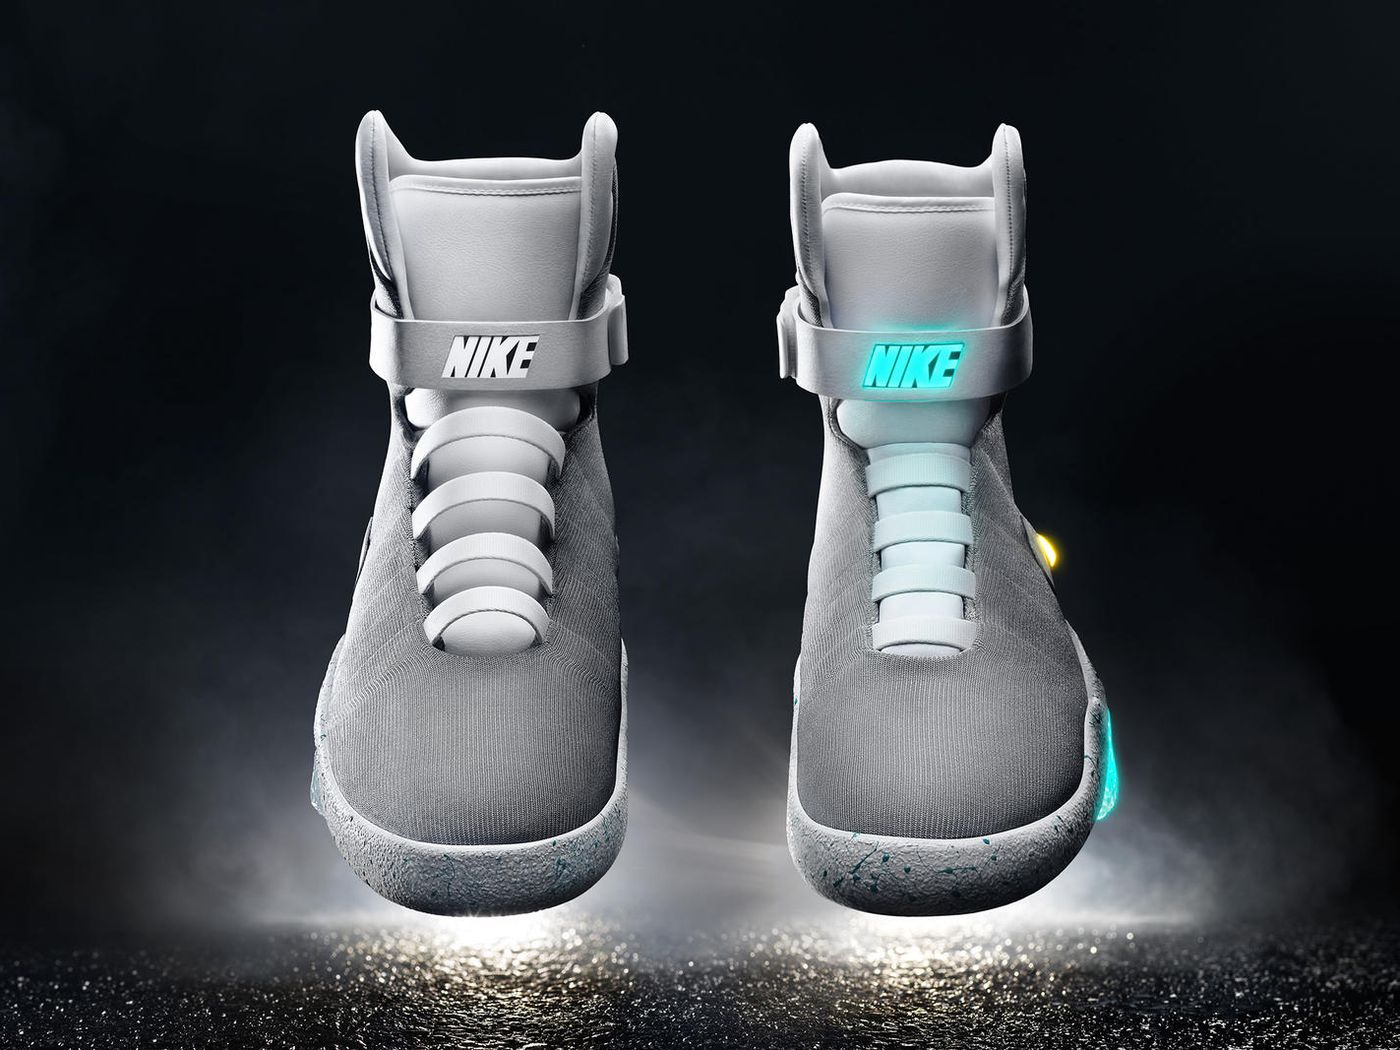 new concept e2348 435ed Nike will sell the self-lacing sneakers from Back to the Future in 2016 -  The Verge